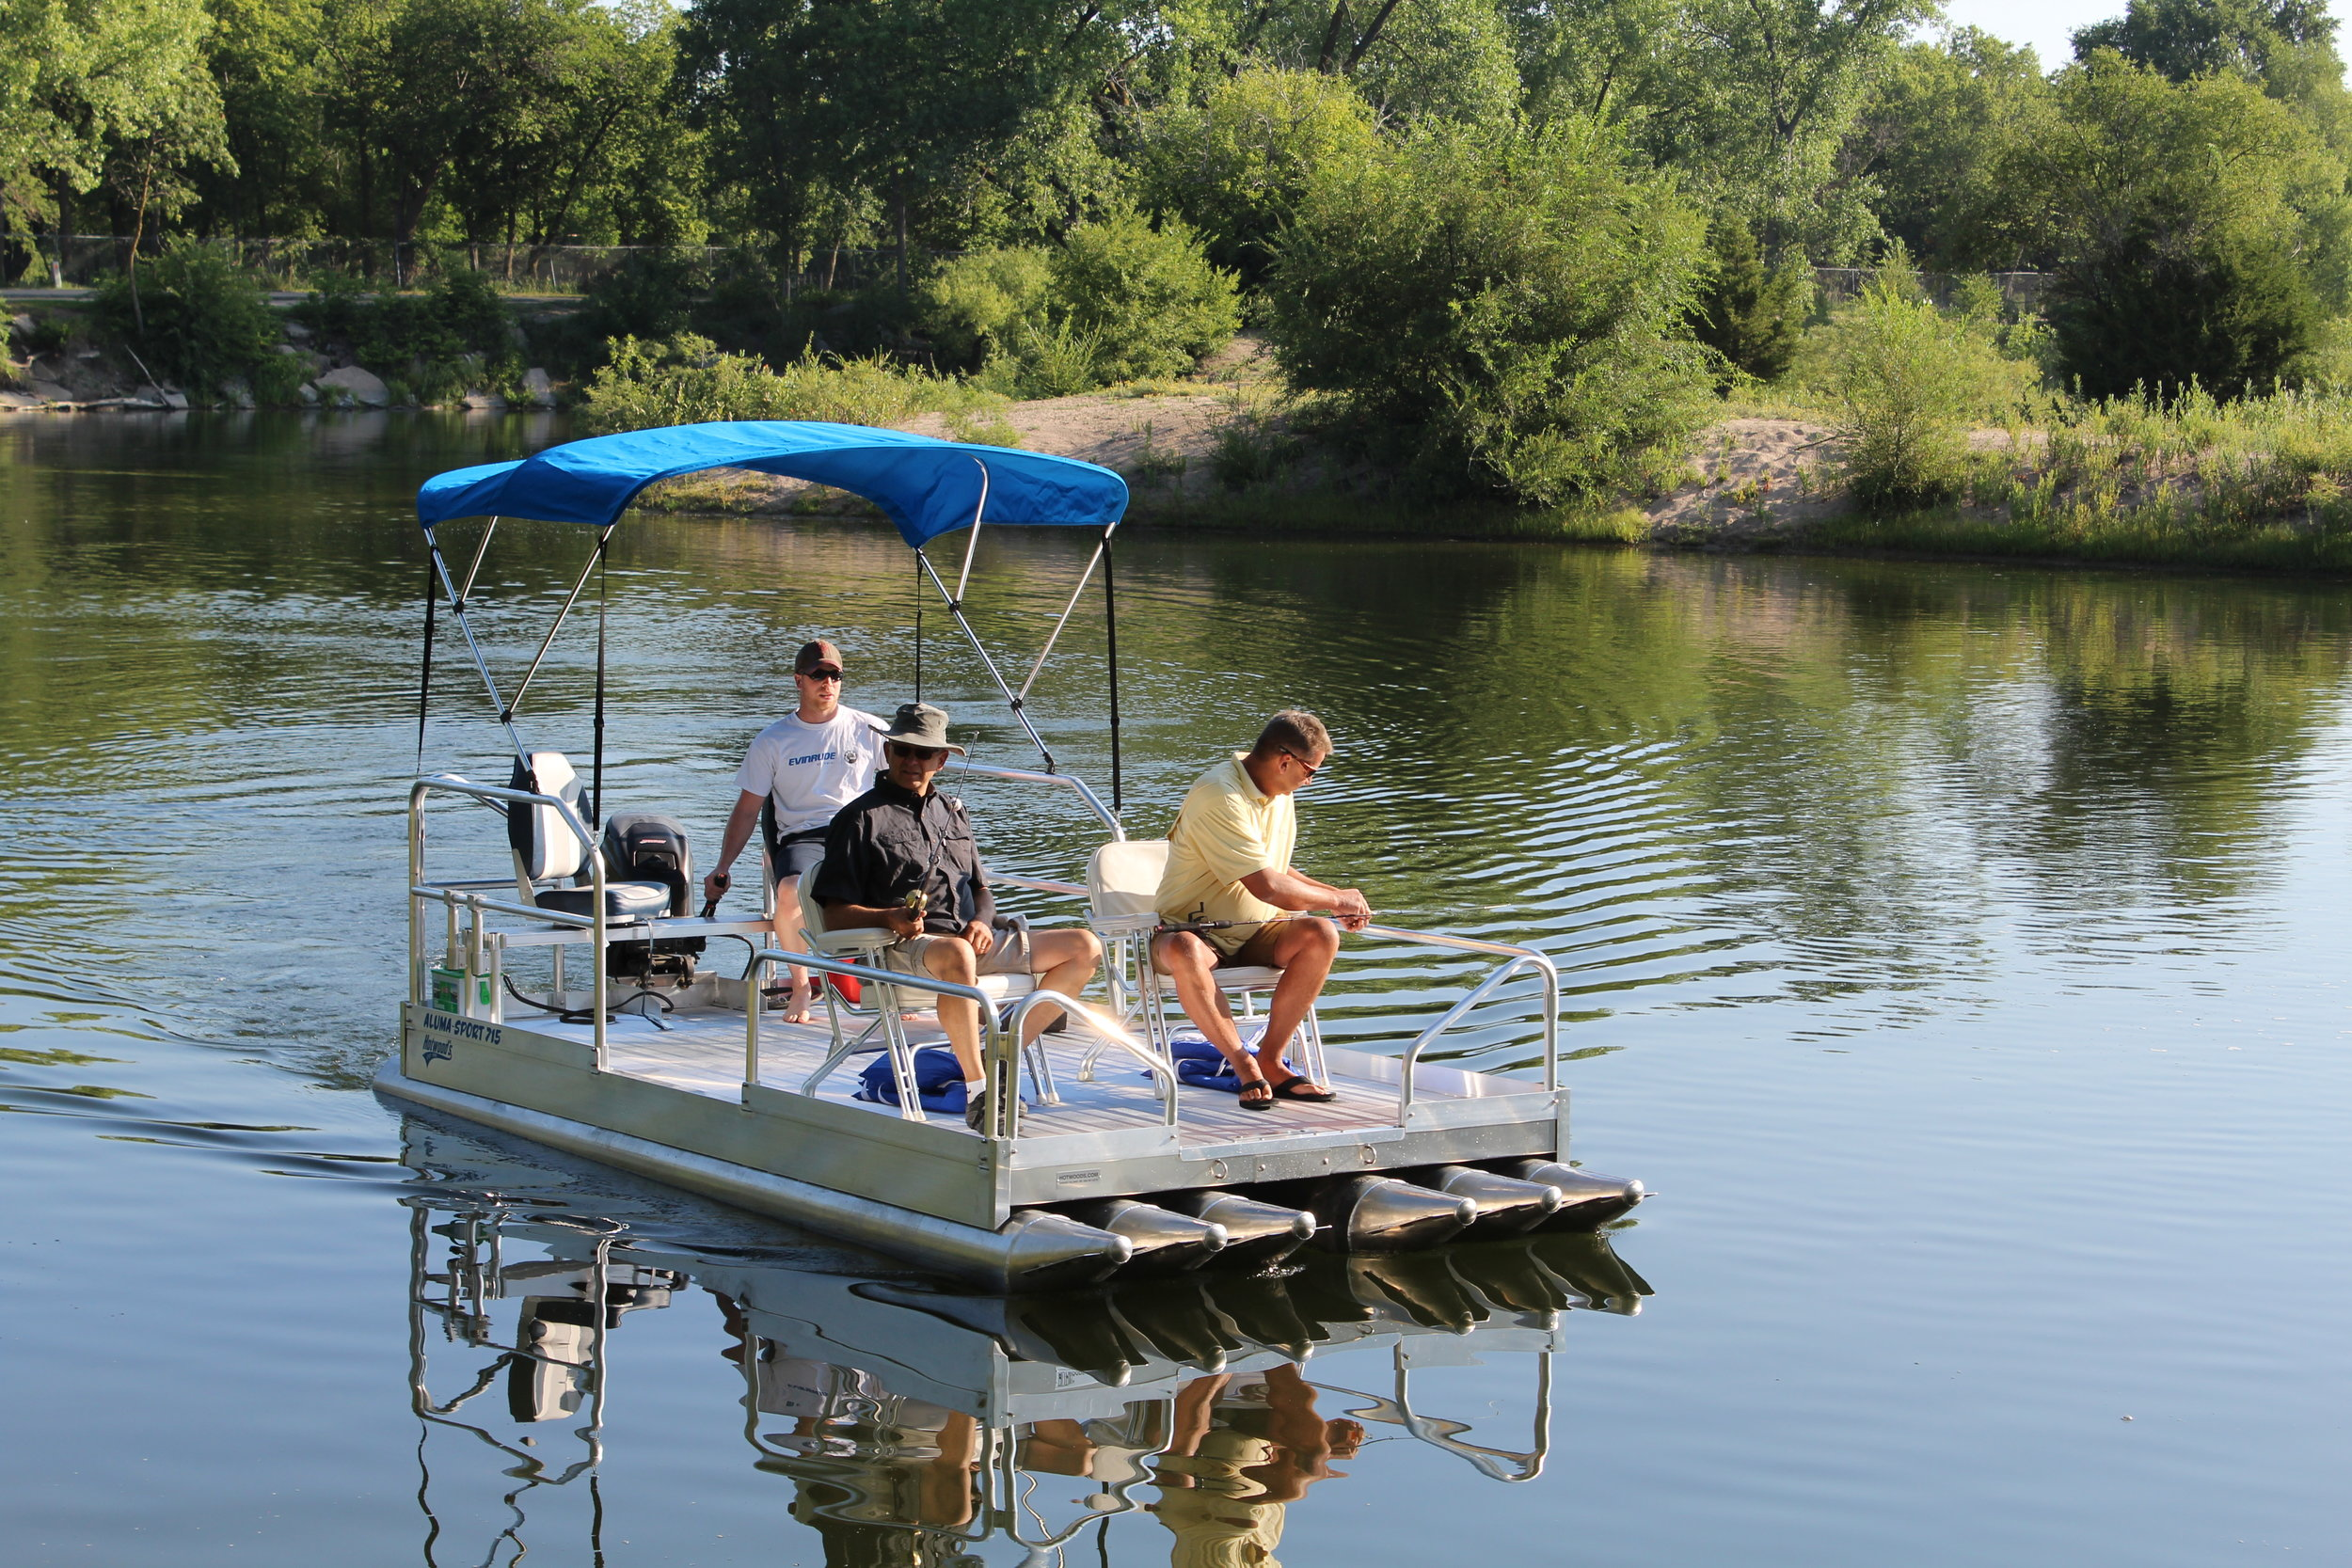 "Check out the all new 716 Aluma Sport pontoon boat, new for 2018. With 1,600 lbs. of capacity and a 25 hp rating, you will have the ability to carry more weight and move across the lake at faster speeds to get to those favorite fishing holes or locations across the water. ( Boat above is shown with optional canopy top, seating and 25 hp. outboard motor.)    This 7' wide x 16' long all aluminum pontoon boat is packed with ( 6 ) 12"" floats that by far give it the most stable platform in the industry for a boat this size. Pontoons are .090 thick aluminum, with .100 thickness on cones and end caps.( That is the heaviest in the industry ) The 716 Aluma Sport weighs 875 lbs, with the trailer weighing 620 lbs. for a combined pulling weight of 1,495 lbs. That makes it very easy to pull with the lightest pickup or like vehicle on the road.    We are personally involved with every boat we have ever designed or manufactured, and after 2 years in development, we can say, this boat is incredible when it comes to maneuverability and stability. We have just never seen anything like it on the water. This craft is literally like walking around on your patio.    Quality, you need not question the construction of this craft, like all our pontoon boats and docks we manufacture, there is nothing to compare them to. The 716 Aluma Sport is manufactured completely of aluminum with stainless steel hardware. We tell people everyday they could bury this boat and dig it up 20 years later and go boating.    We are now in full production and taking orders on the 716 Aluma Sport and Shoreland'r trailer. ( Please call for pricing and delivery dates toll free 877-407-8645 )"